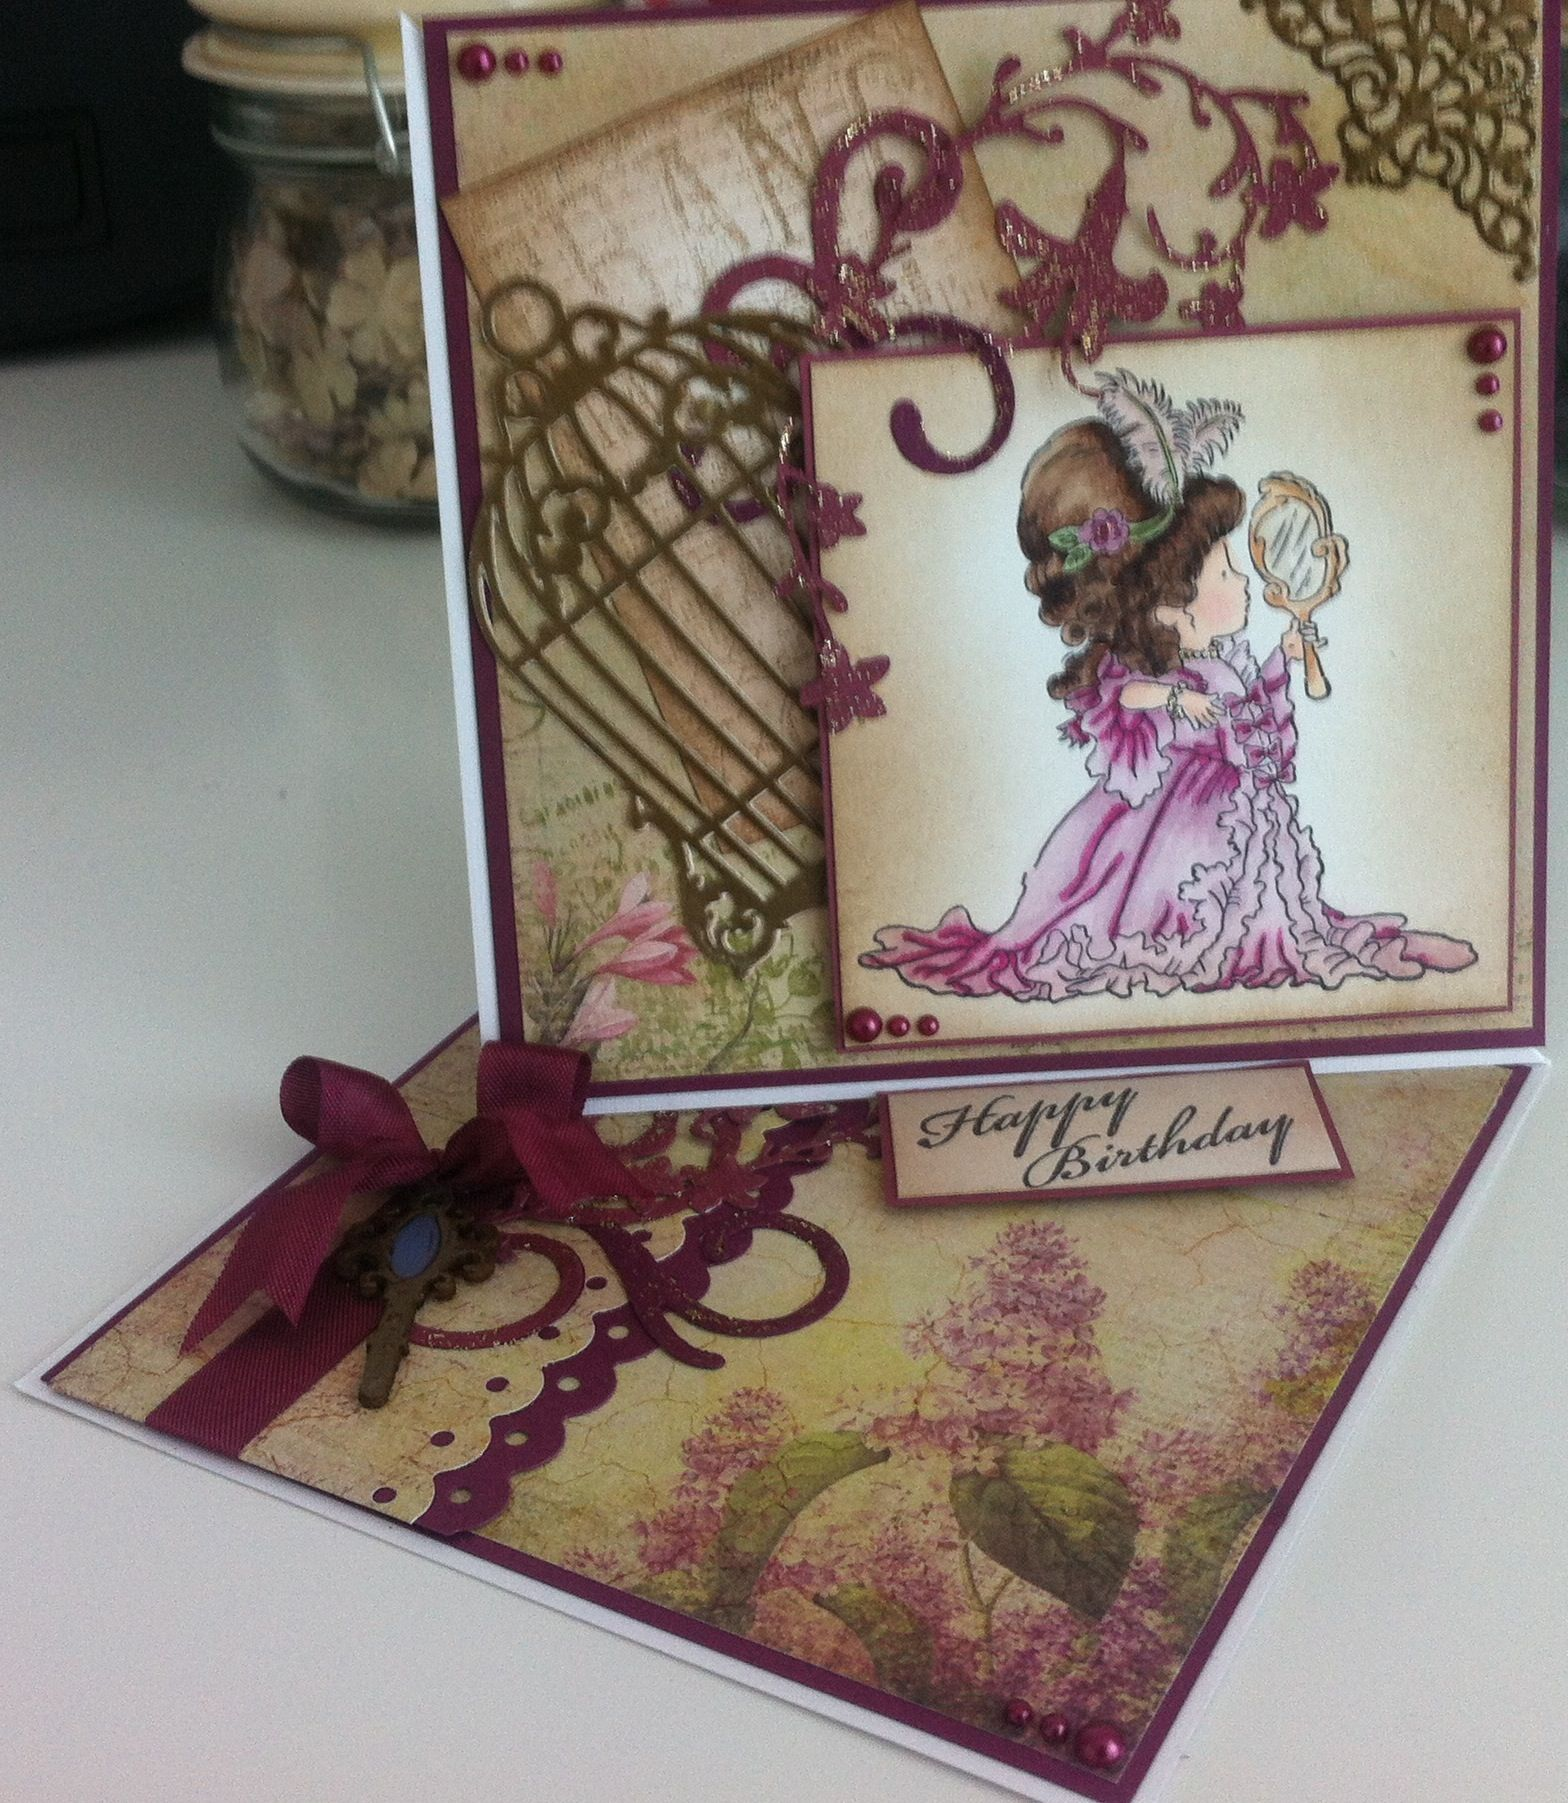 A twisted easel birthday card